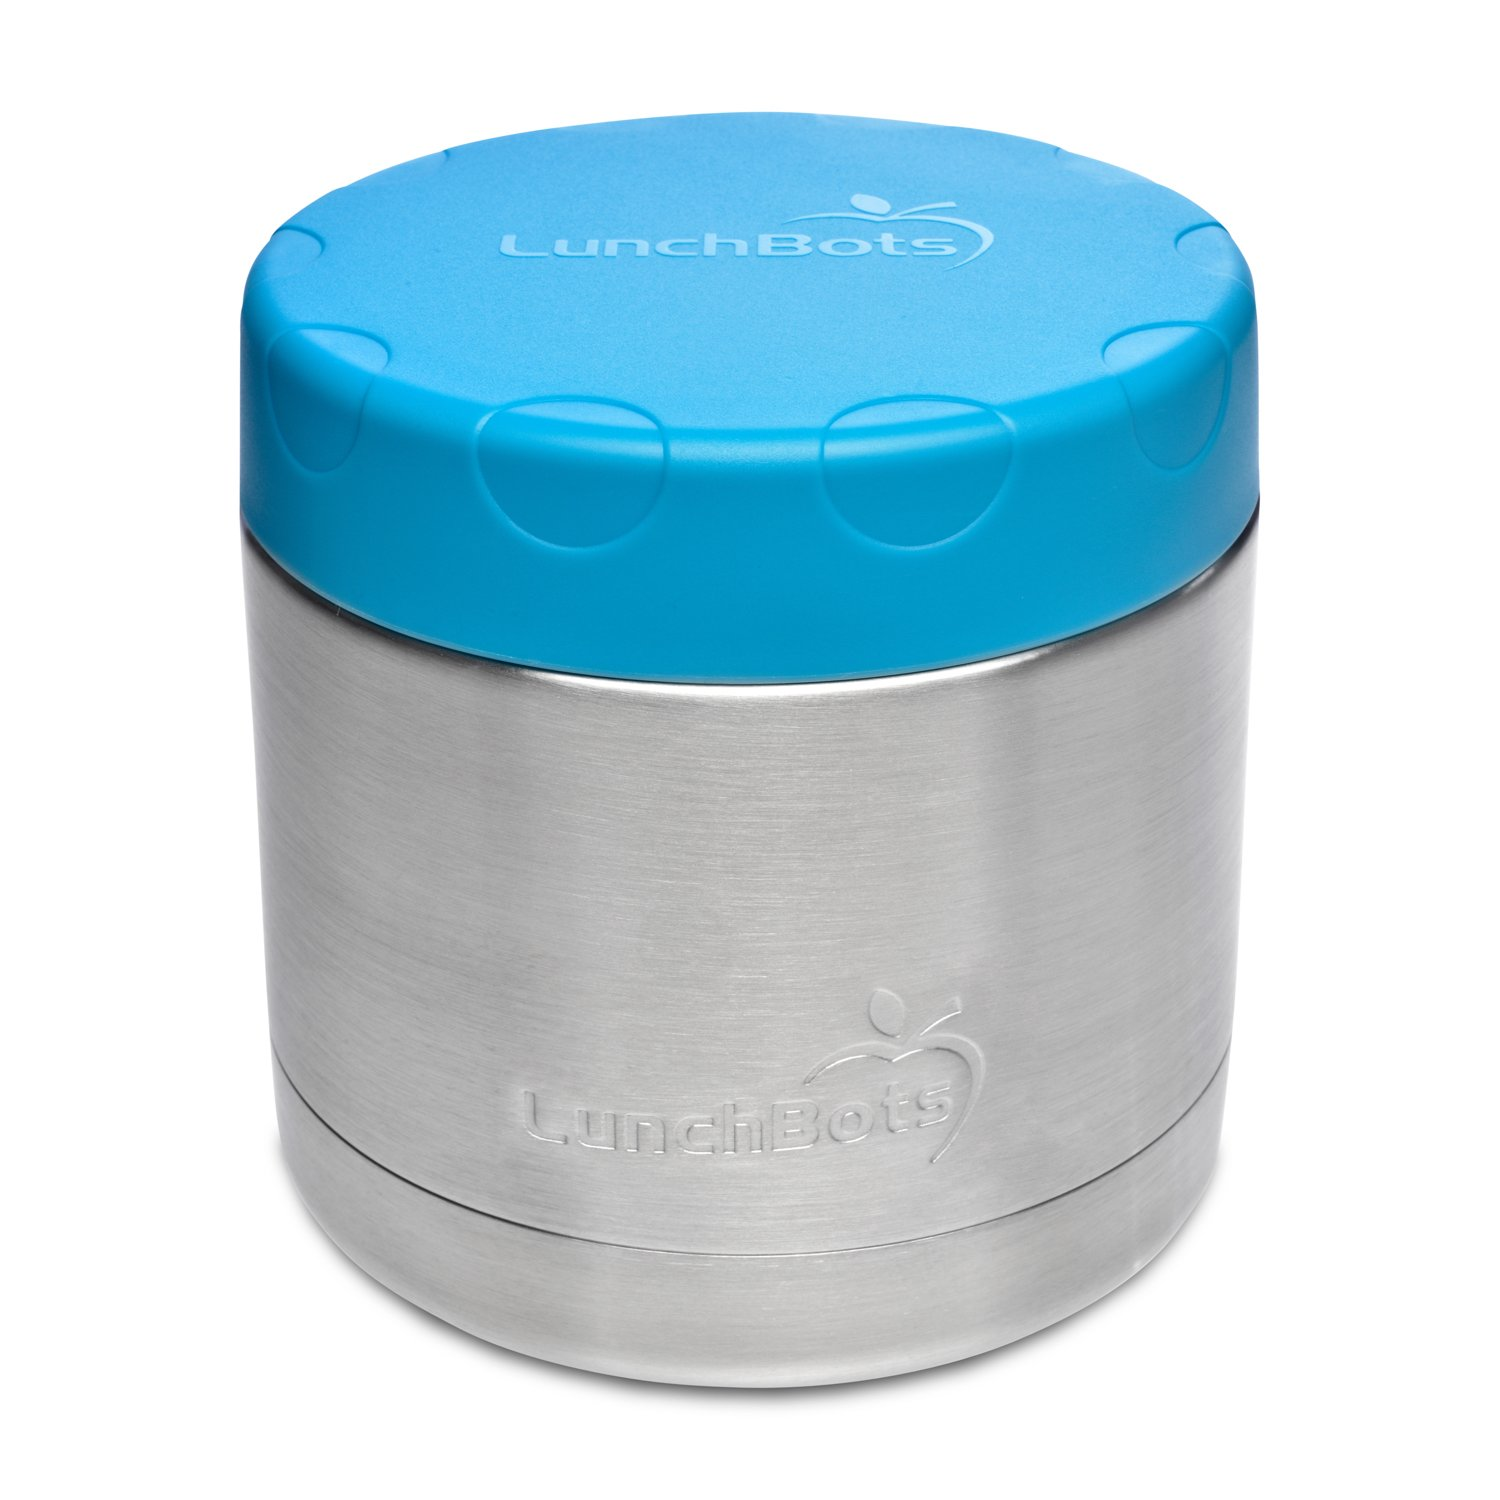 LunchBots Wide Thermal 16 oz. All Stainless Steel Bowl - Insulated Food Container Stays Hot 6 Hours or Cold for 12 Hours - Leak Proof Soup Jar for Portable Convenience - Aqua